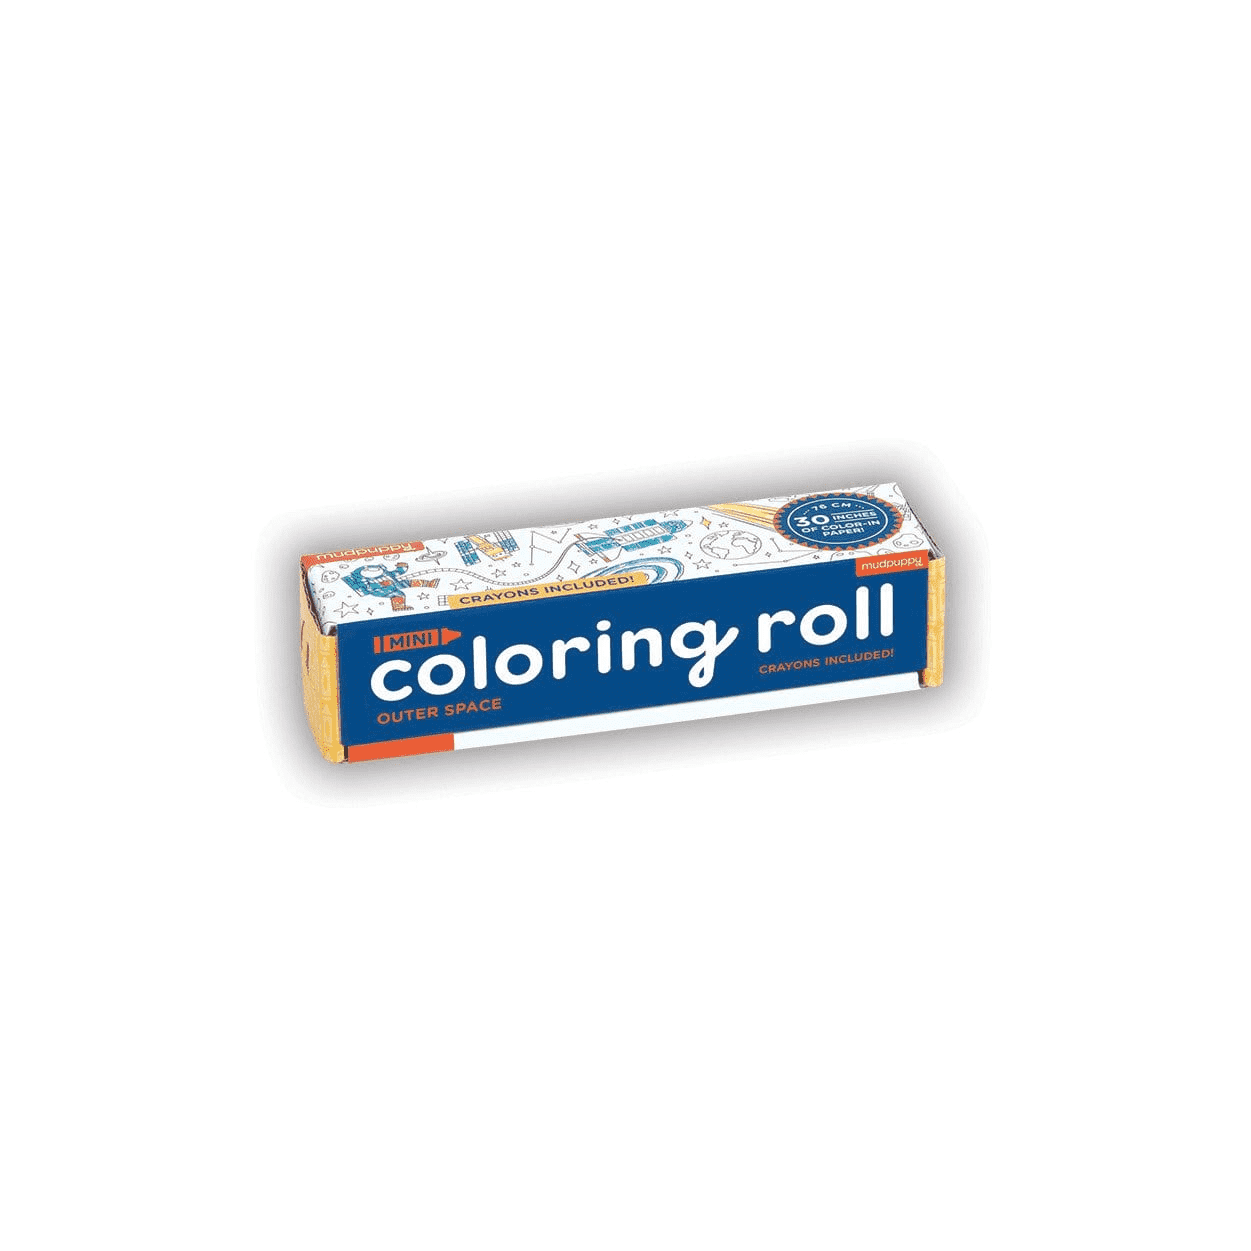 Outer Space Mini Coloring Roll Coloring Rolls Mudpuppy